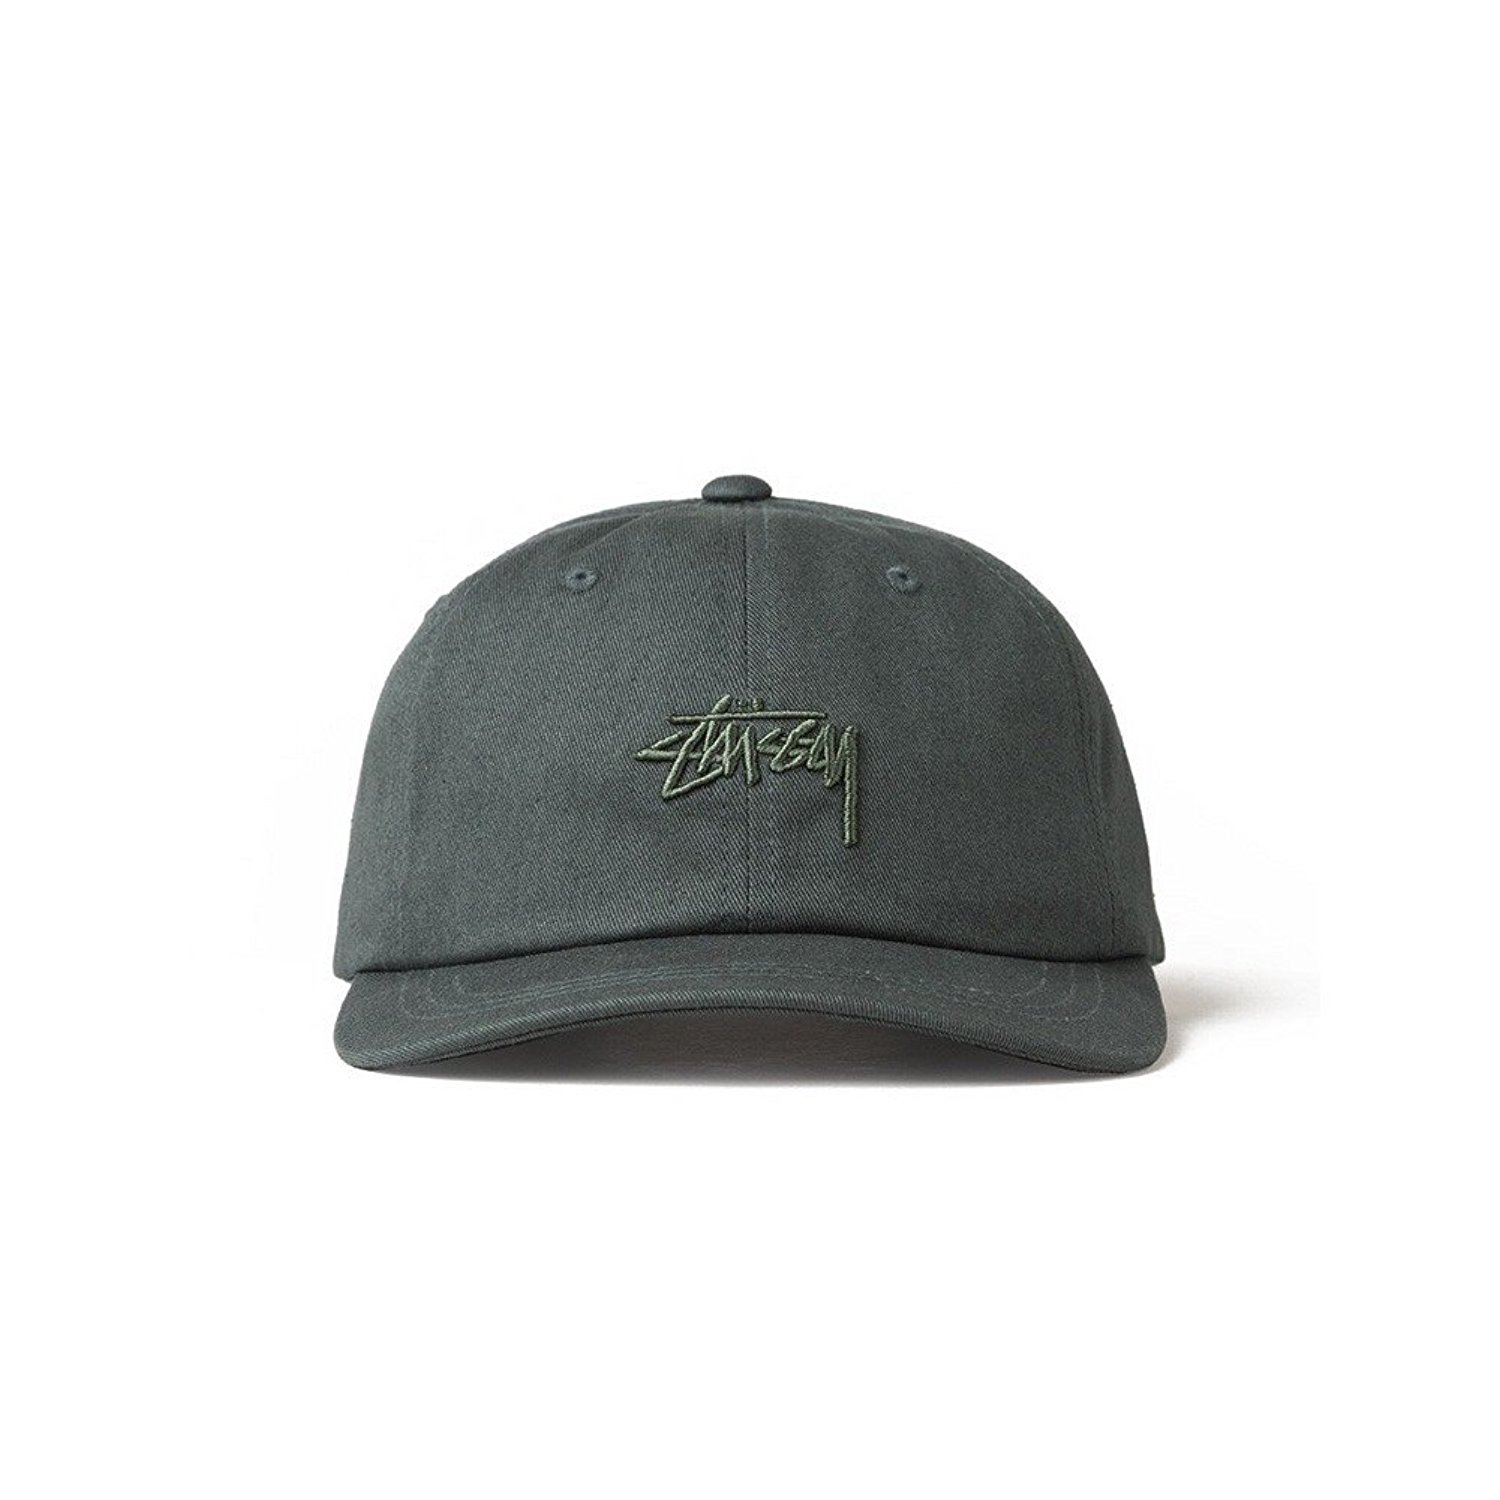 c02b5b961f5 Get Quotations · Stussy Cap – Tonal Stock Low green size  Adjustable